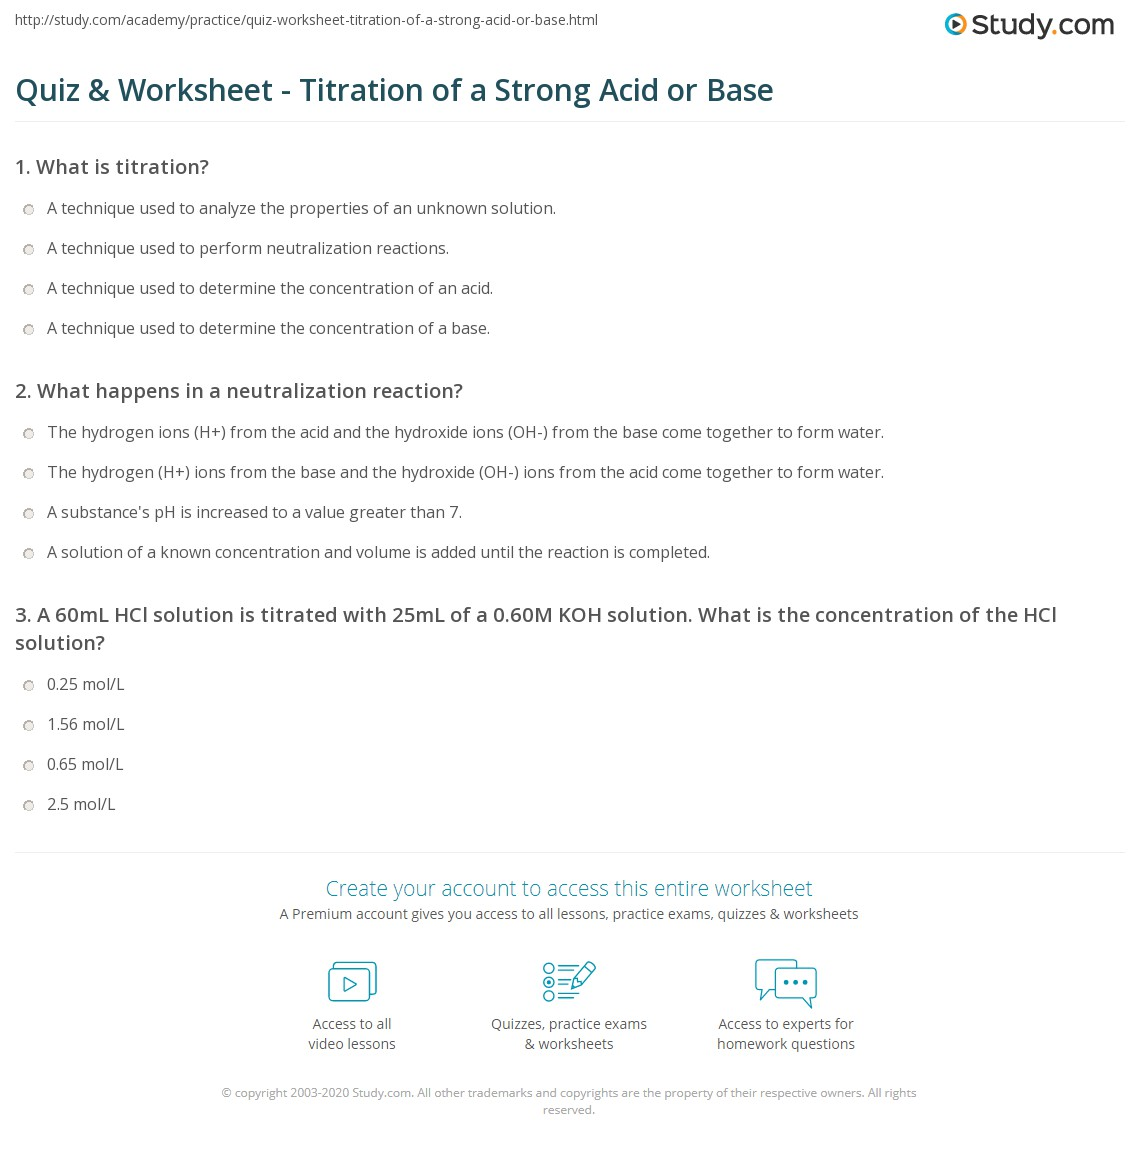 Quiz & Worksheet - Titration of a Strong Acid or Base | Study.com